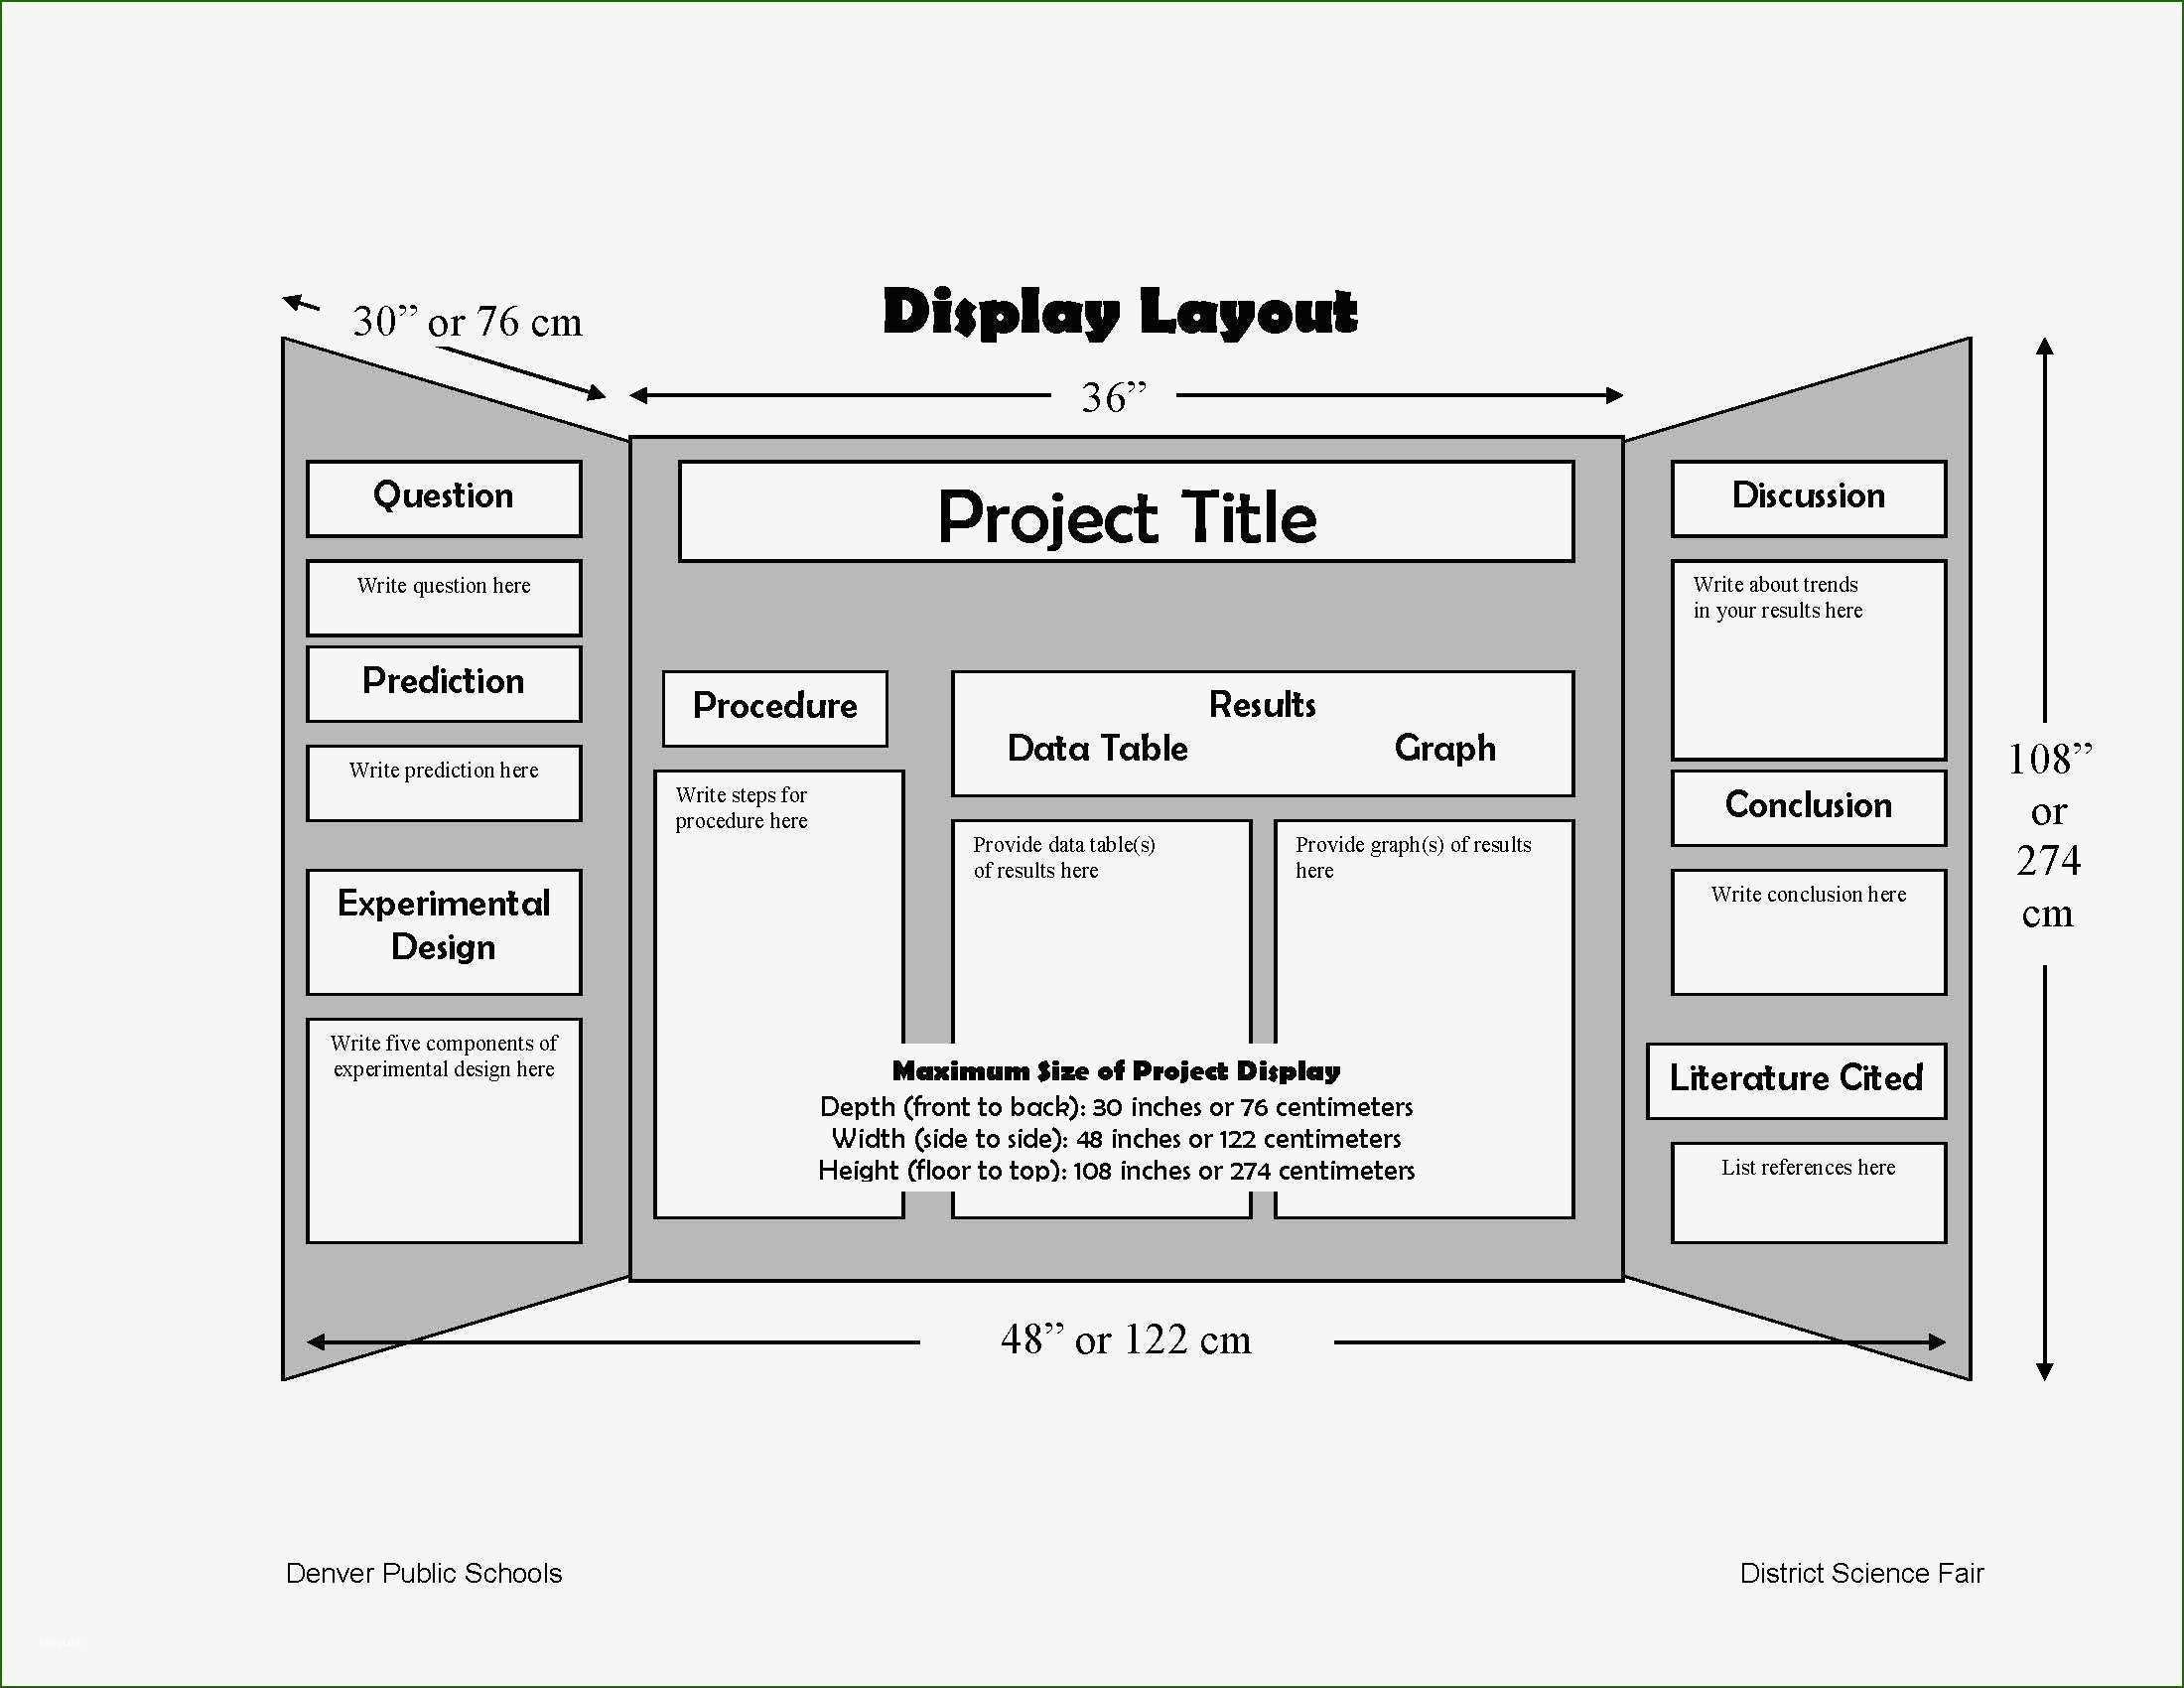 Prodigious Science Fair Board Template For 2020 In 2021 Science Fair Projects Boards Science Fair Board Science Fair Tri fold poster board template